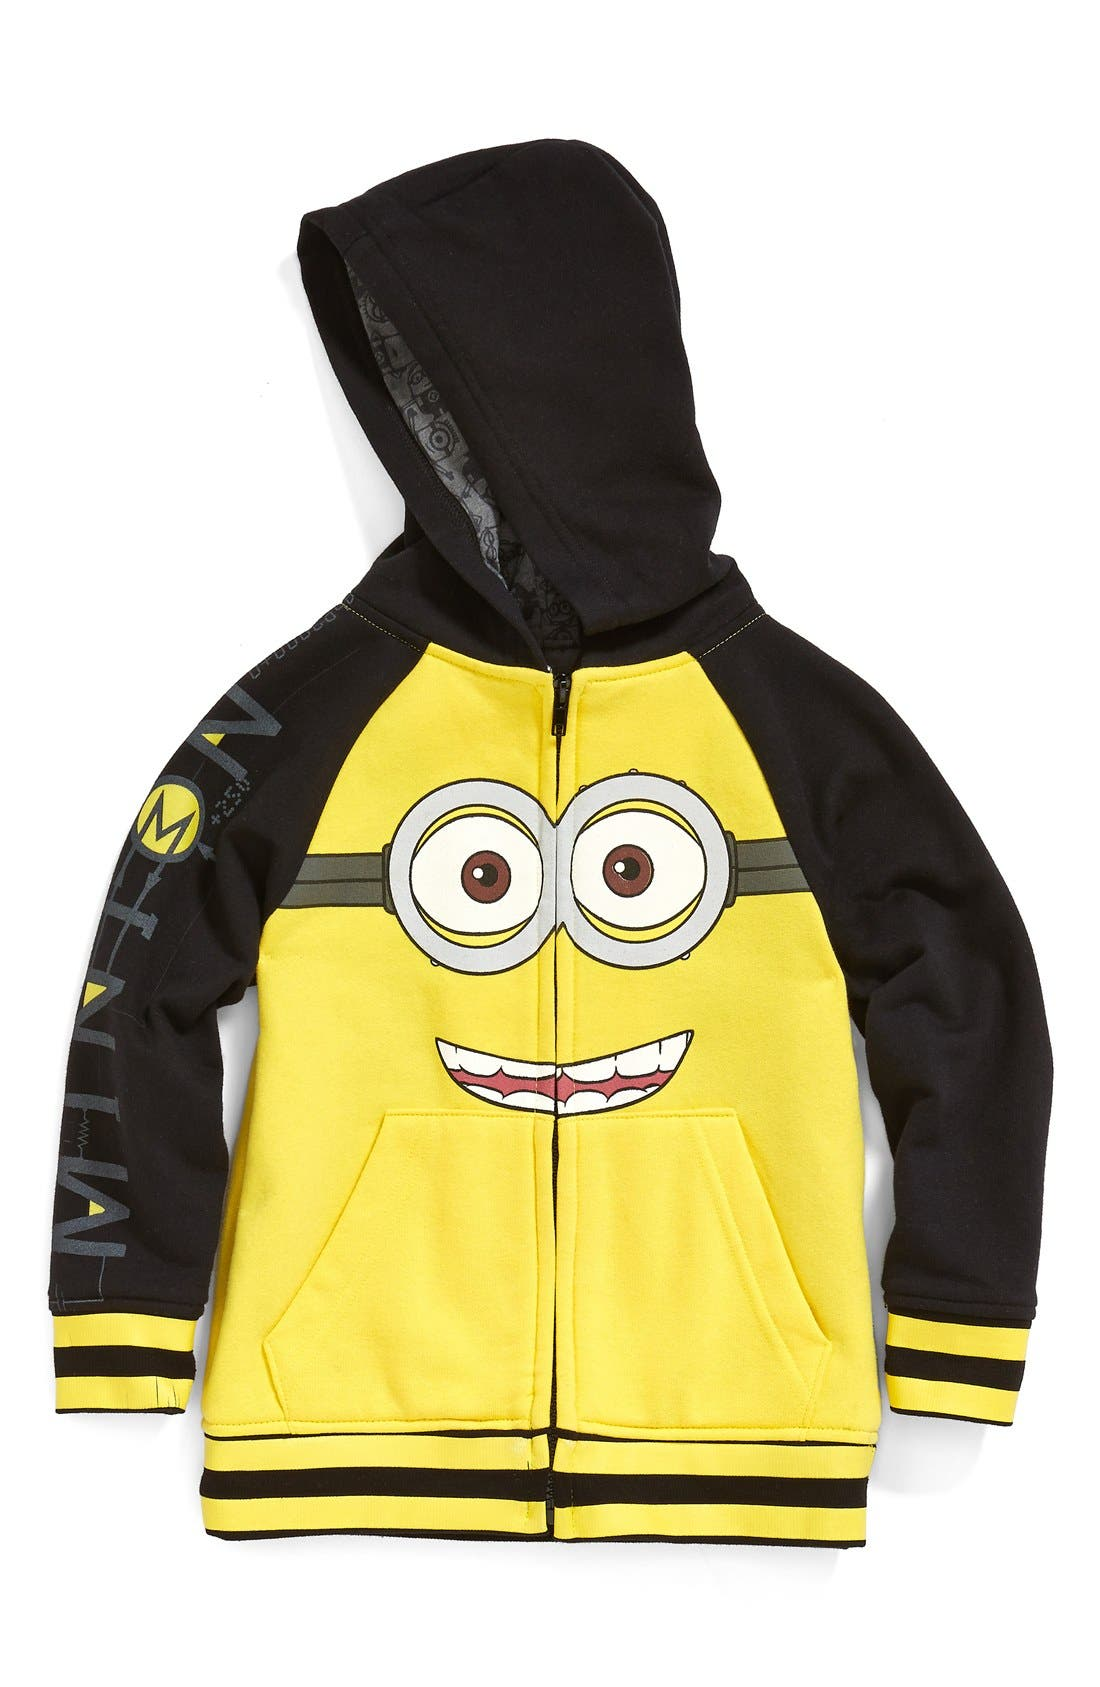 Main Image - Jem 'Goggle Minion - Despicable Me™' Zip Front Hoodie (Toddler Boys & Little Boys) (Nordstrom Exclusive)